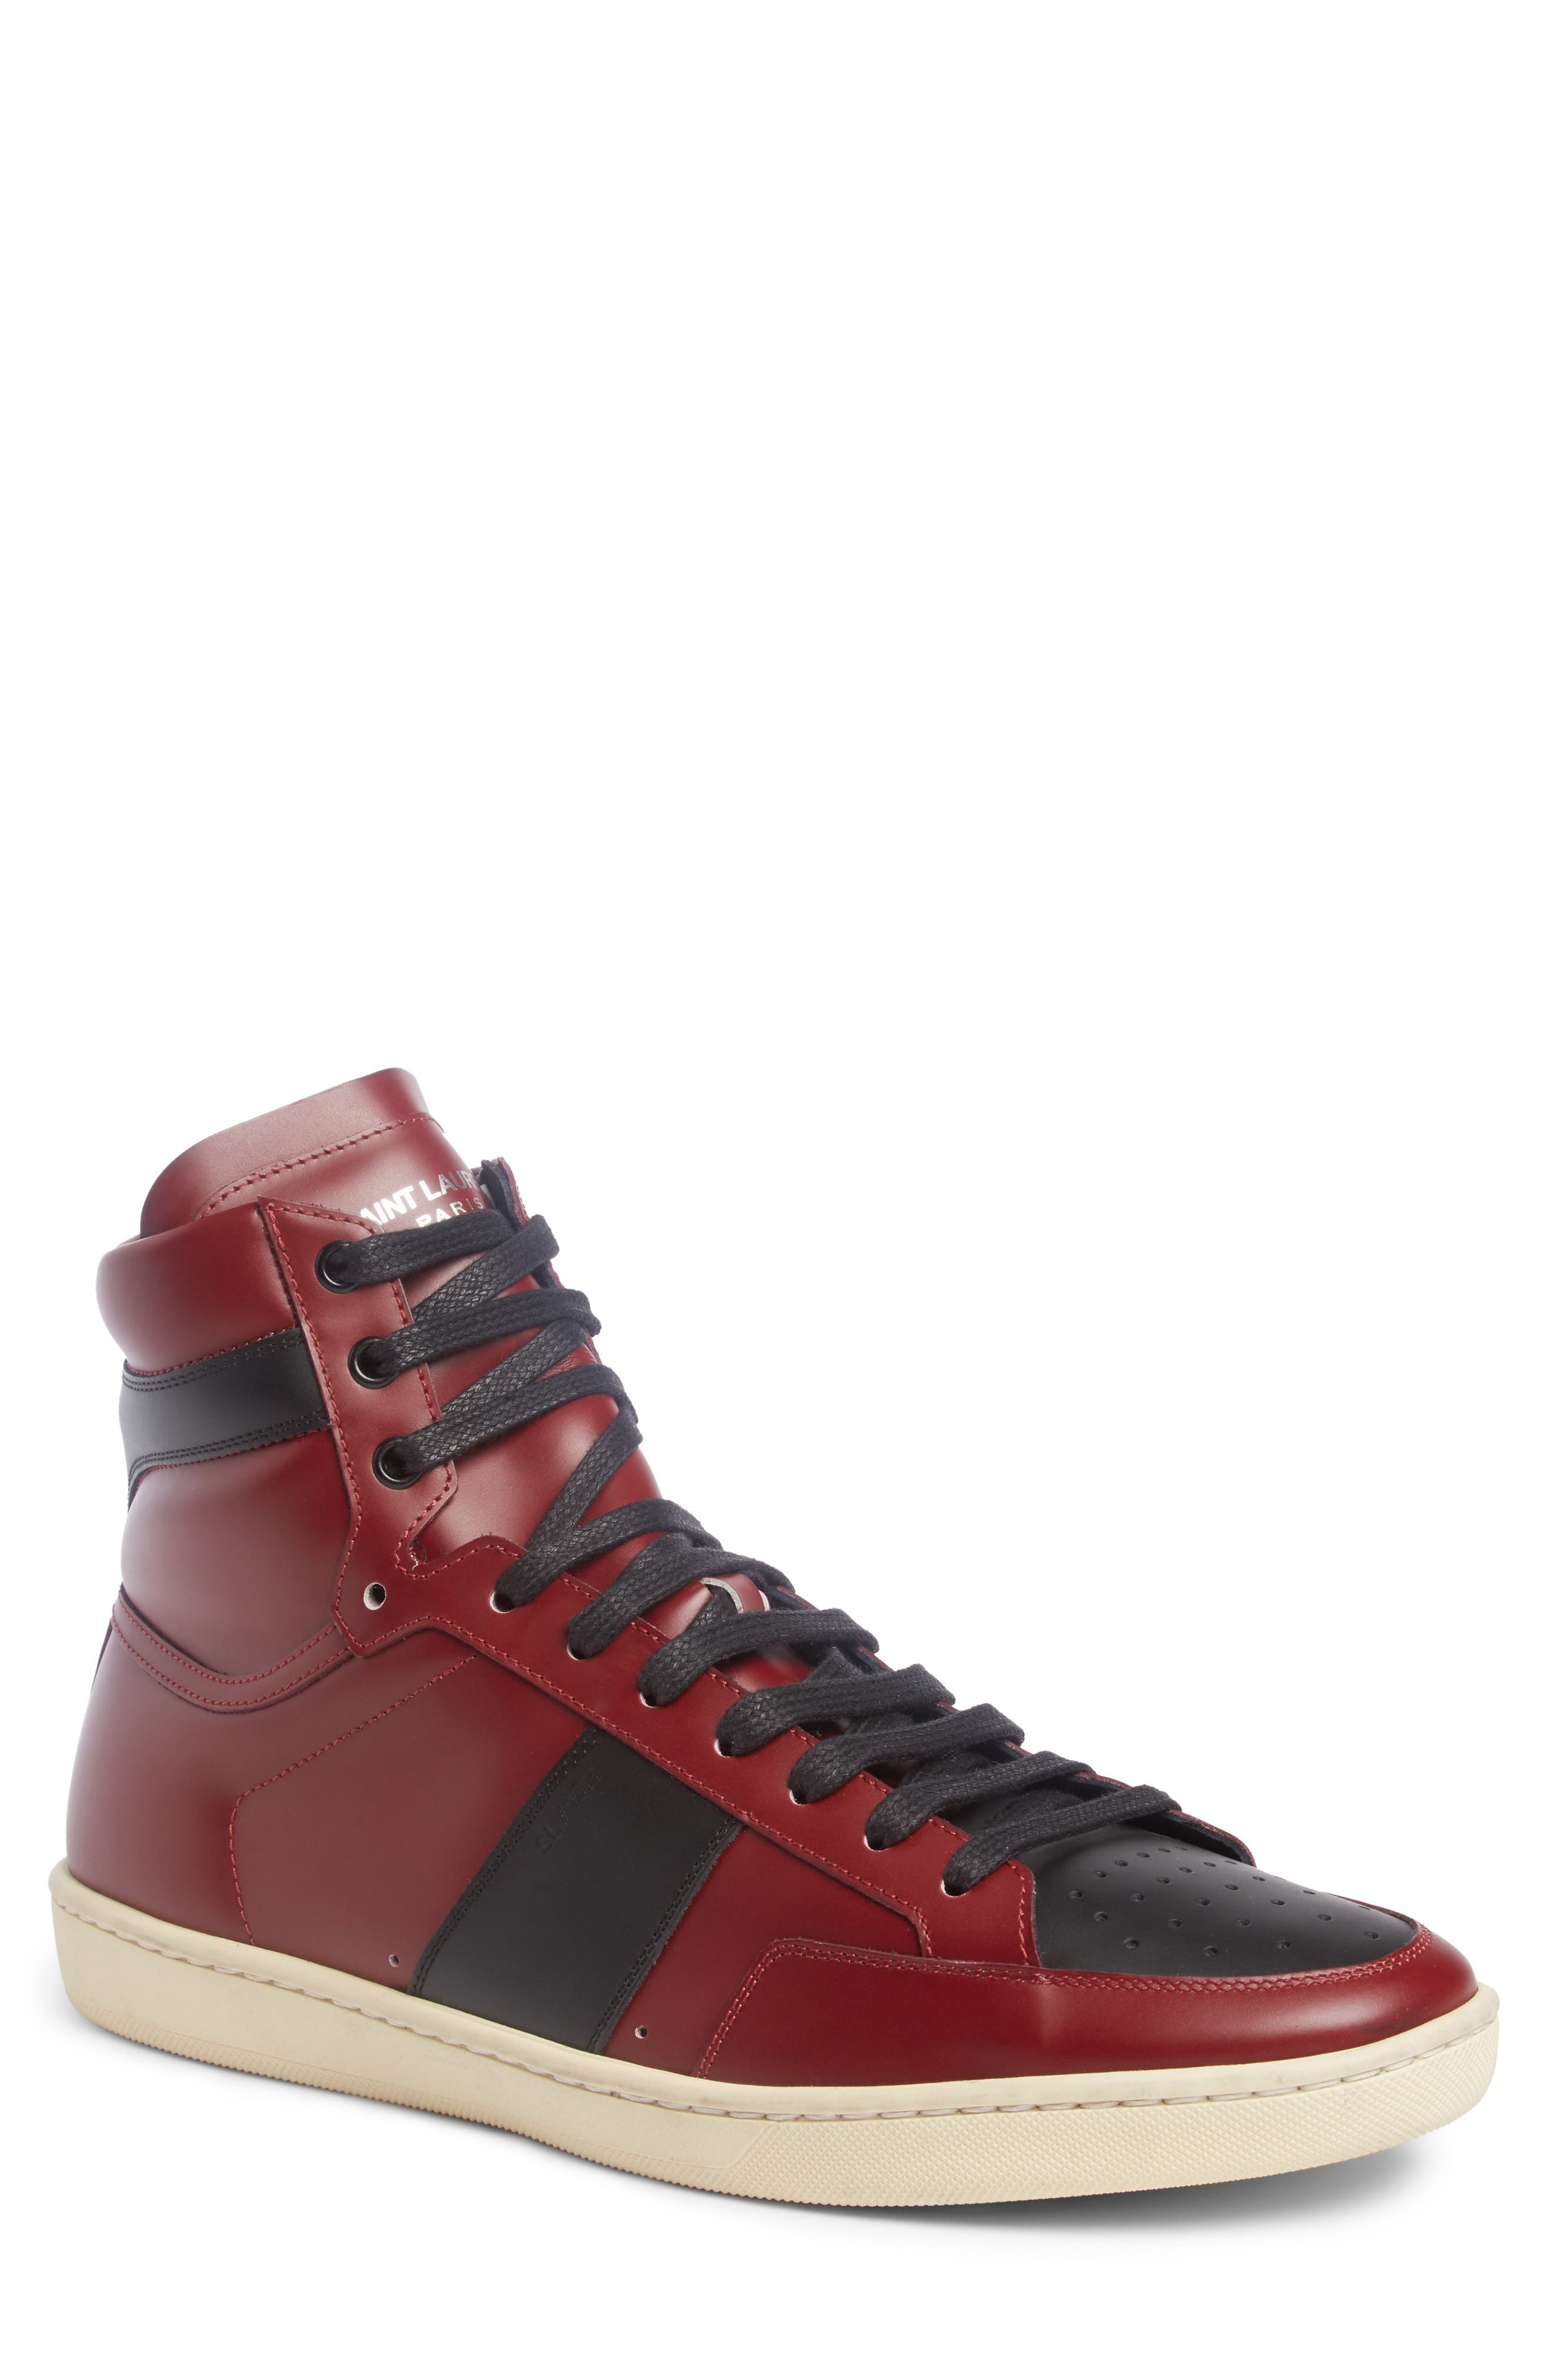 SL/10H Signature Court Classic High-Top Sneaker,                             Main thumbnail 1, color,                             Dp Red/ Blk Leather